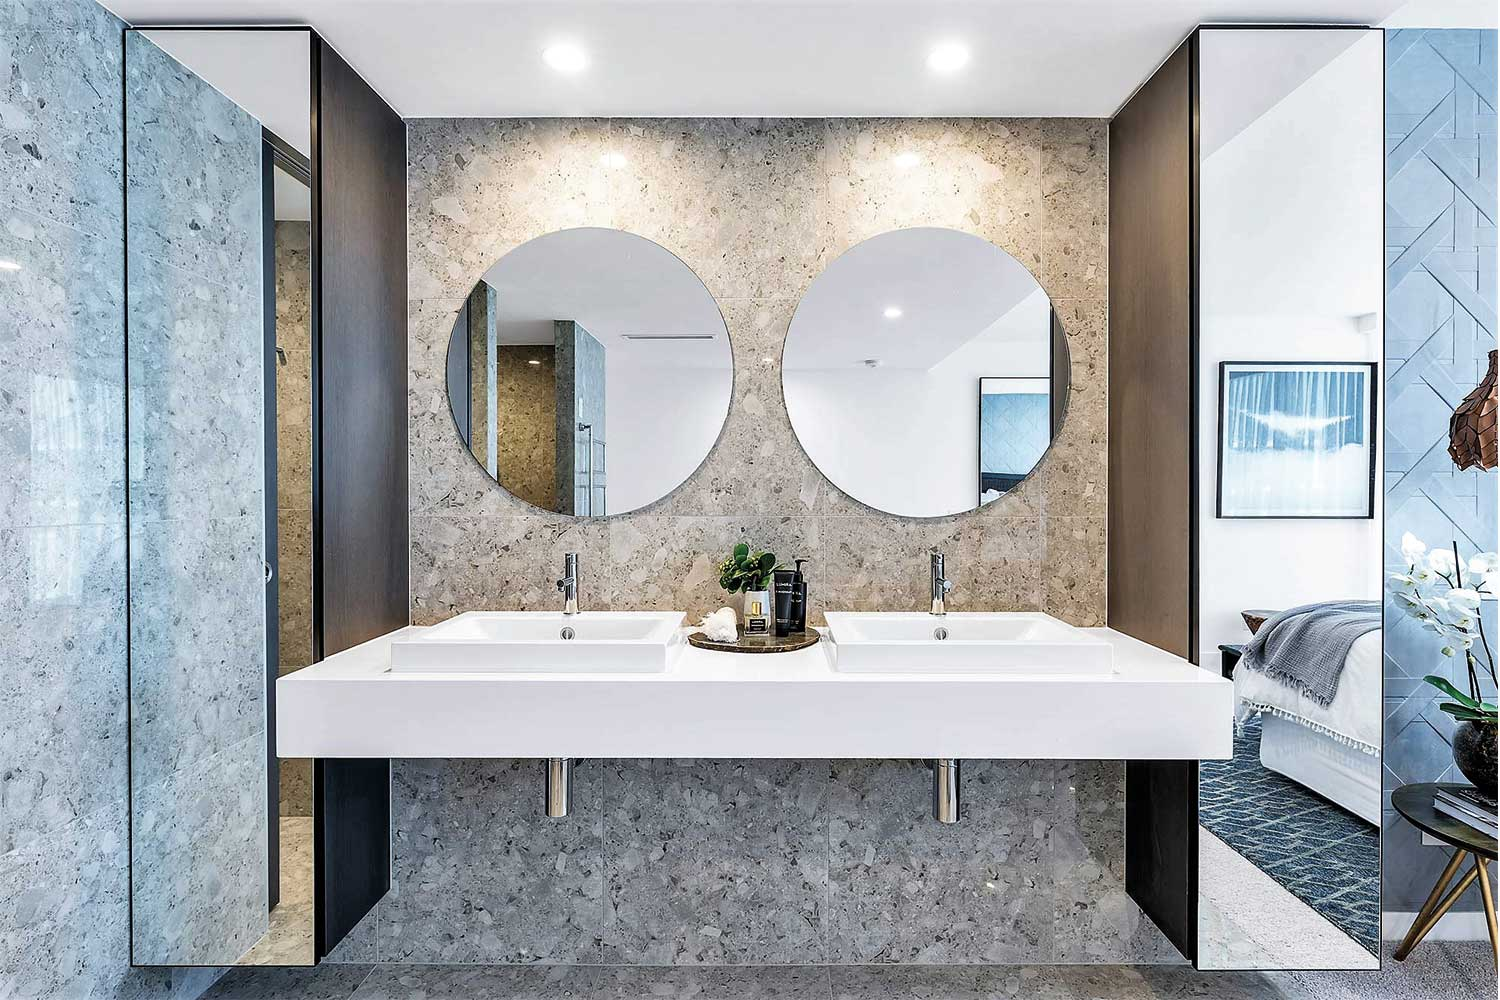 bathroom styling trends for winter 2018 | home beautiful magazine